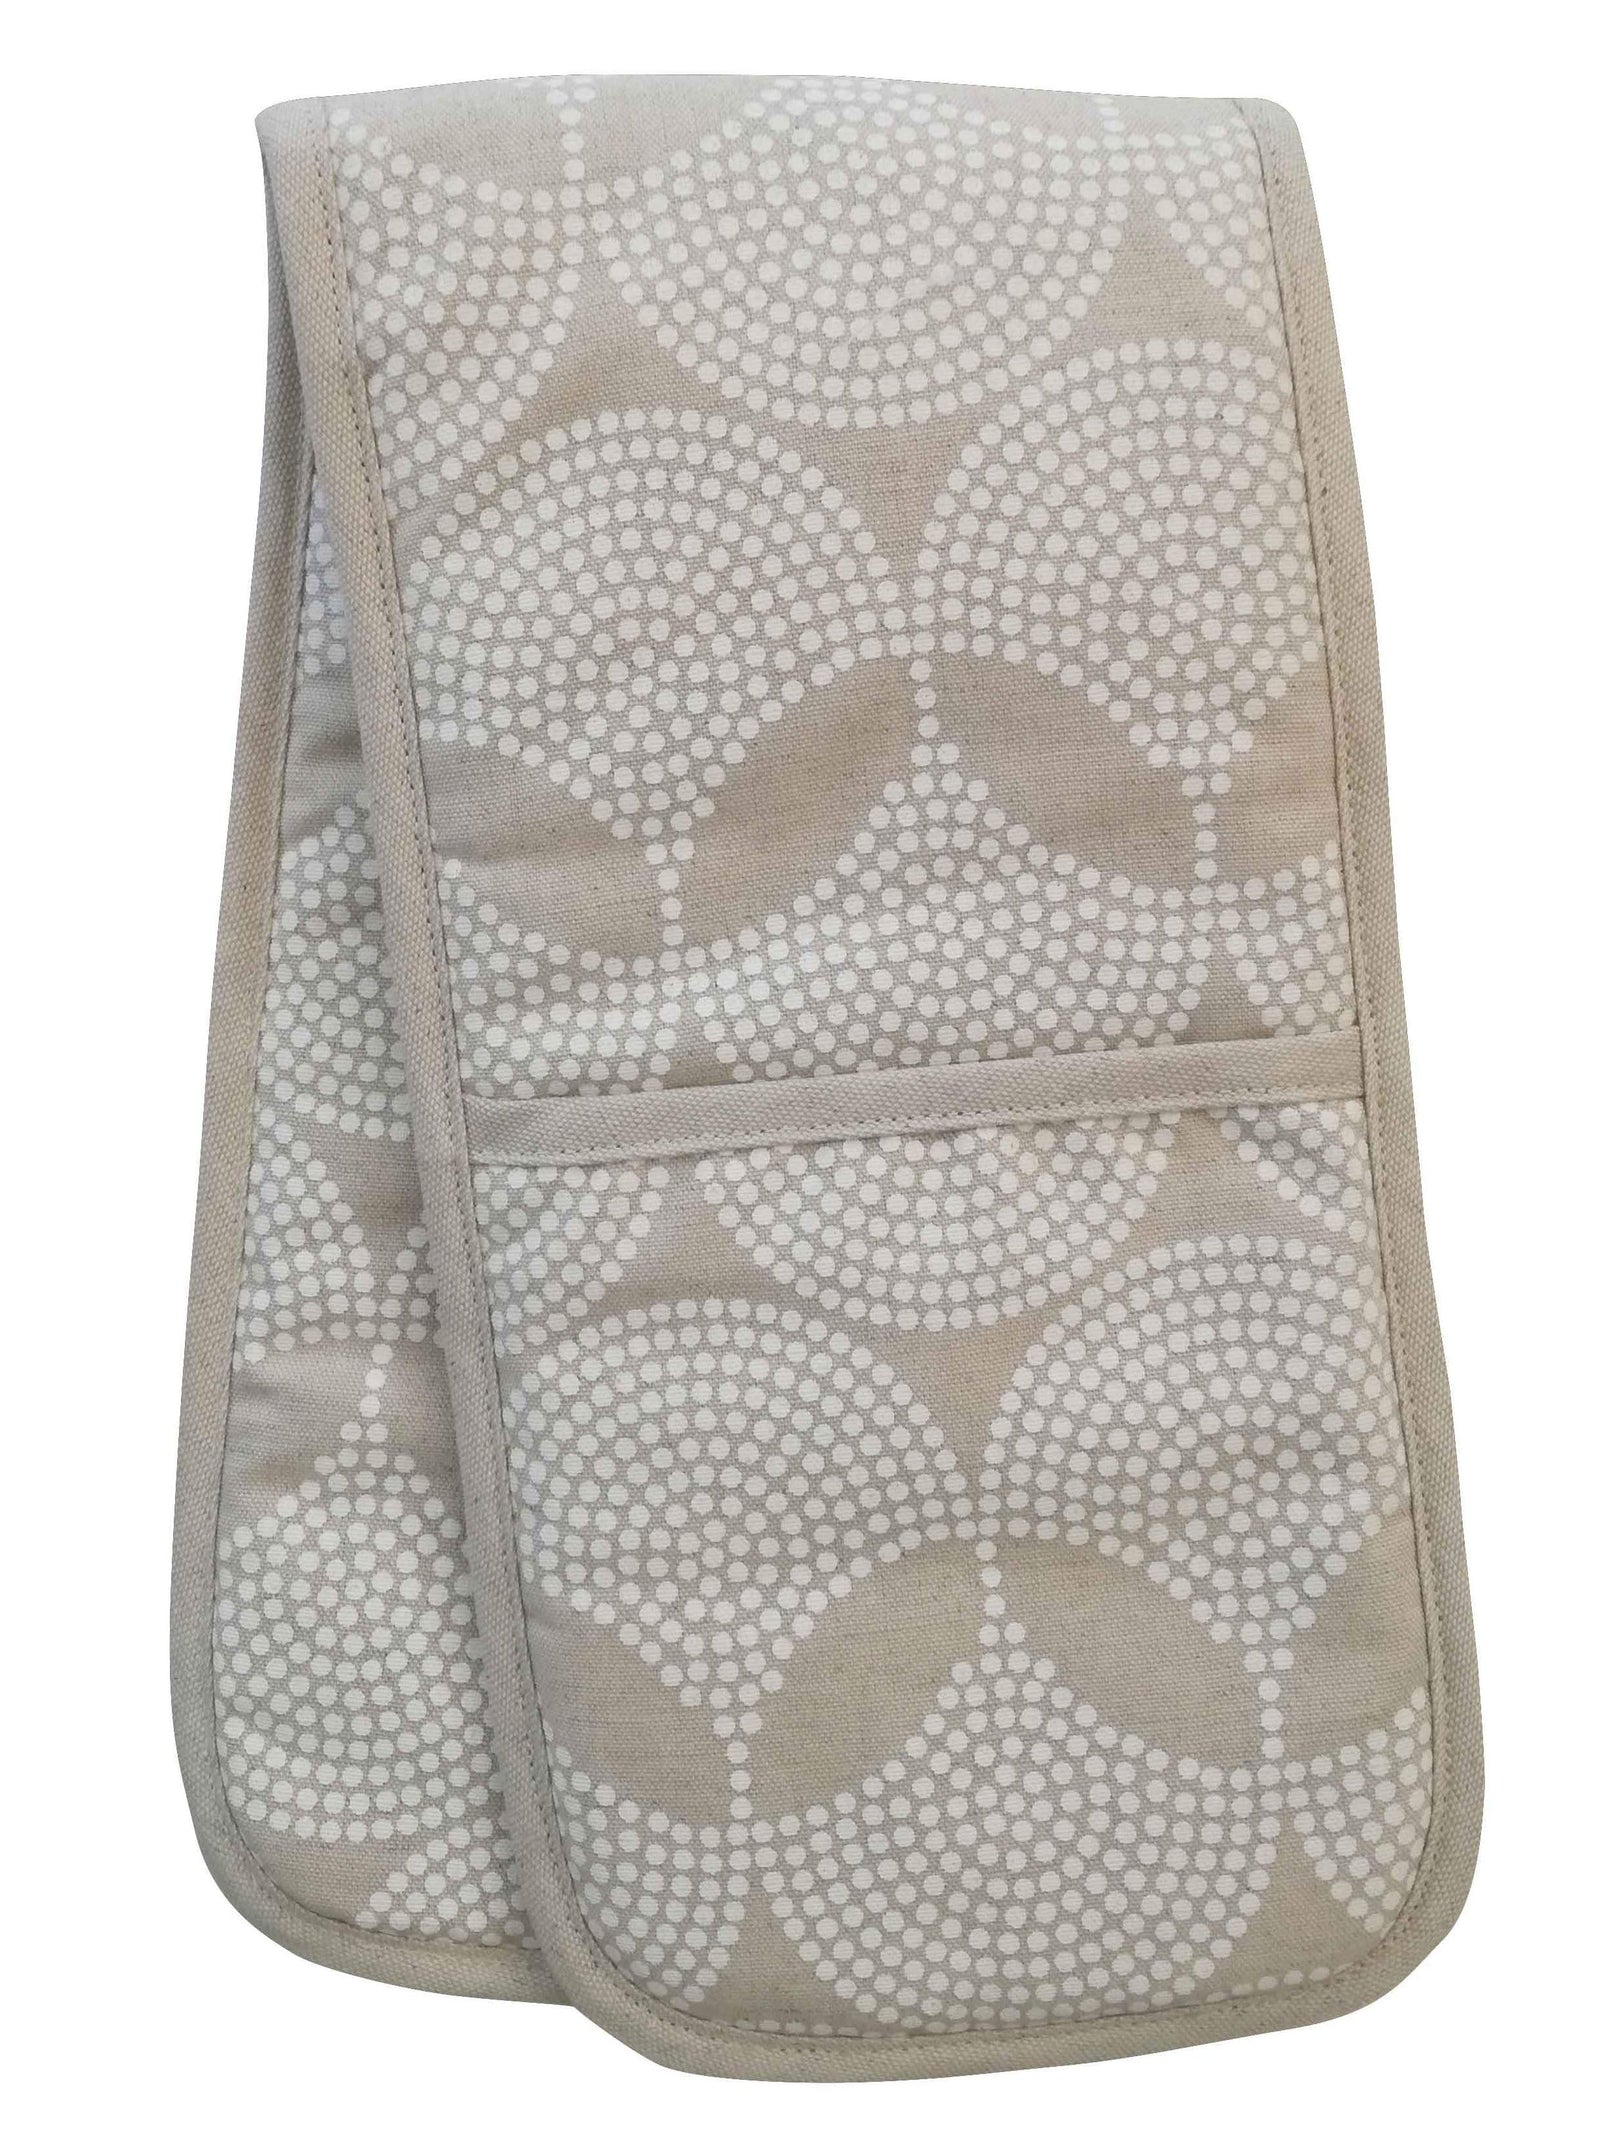 Sunset Radiance White Double Oven Glove